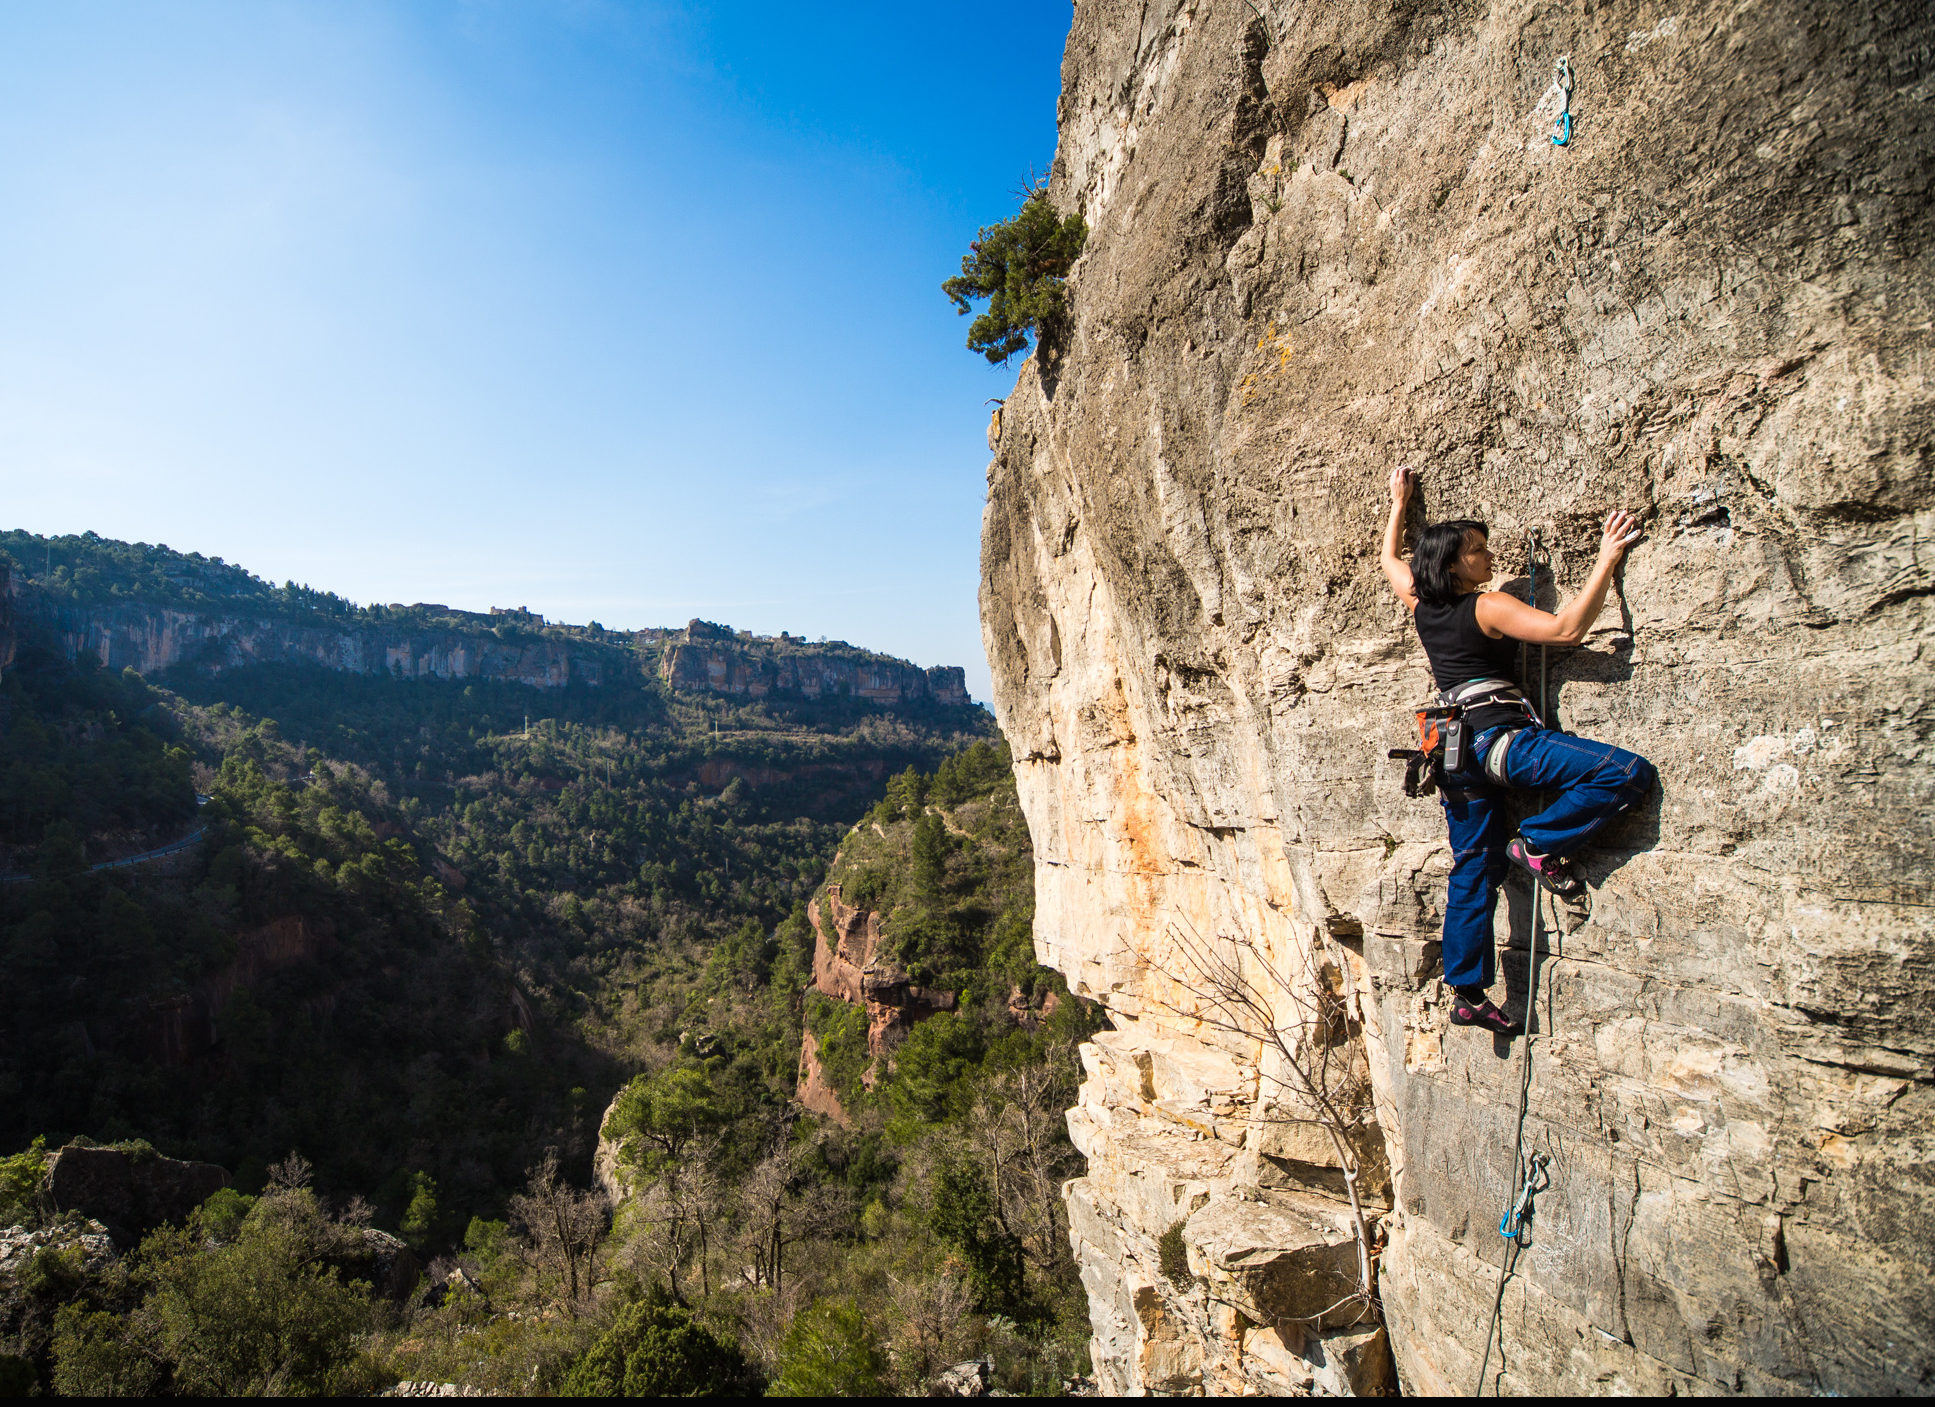 Christmas climbing camp: Spanish rock climbing holiday in Sella